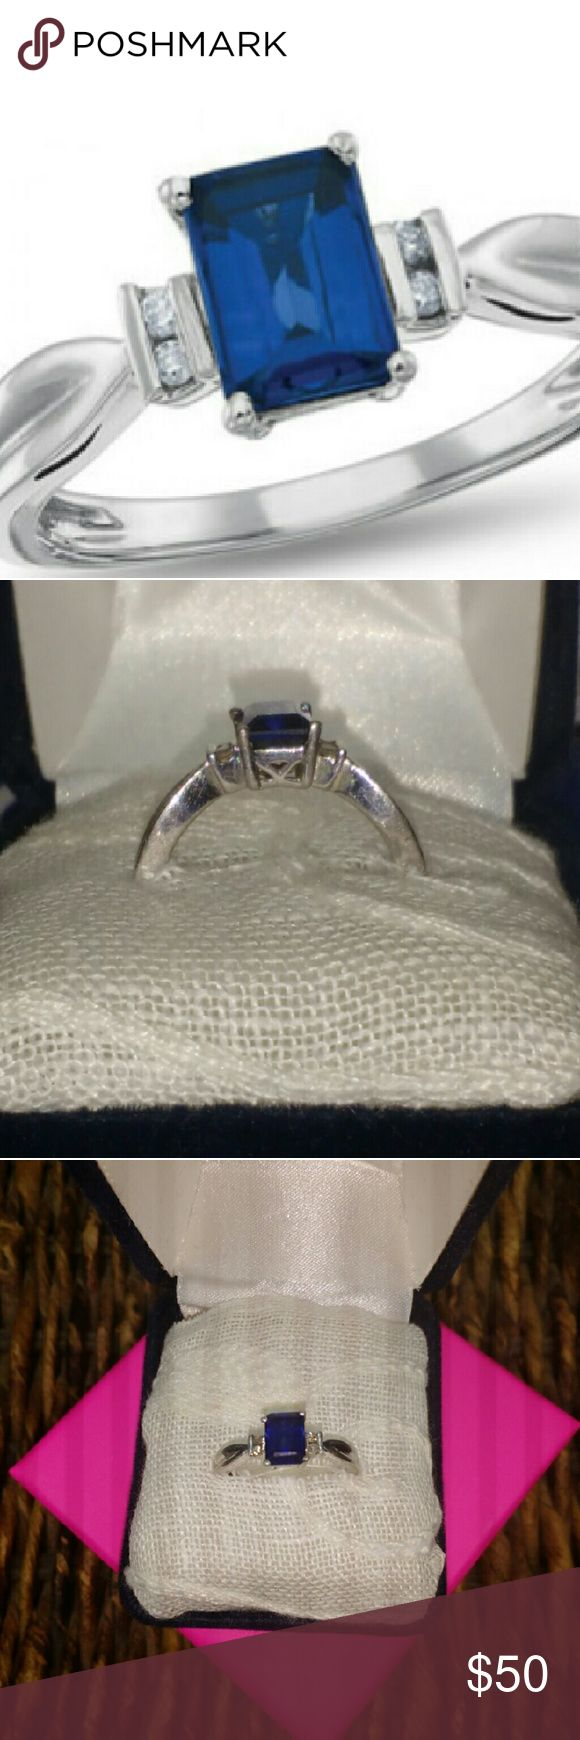 Real Blue Sapphire Diamond Ring *Beautiful Rectangular Sapphire Ring  *Sapphire with Emerald Cut Shaped Lab Created Blue Sapphire & Accented with 2 Diamonds   *Intricate & Uniquely Designed Sterling Silver Band  *Size 7 1/2   *OFFERS WELCOME*  TRADE ALSO* Samuels Jewelers Jewelry Rings